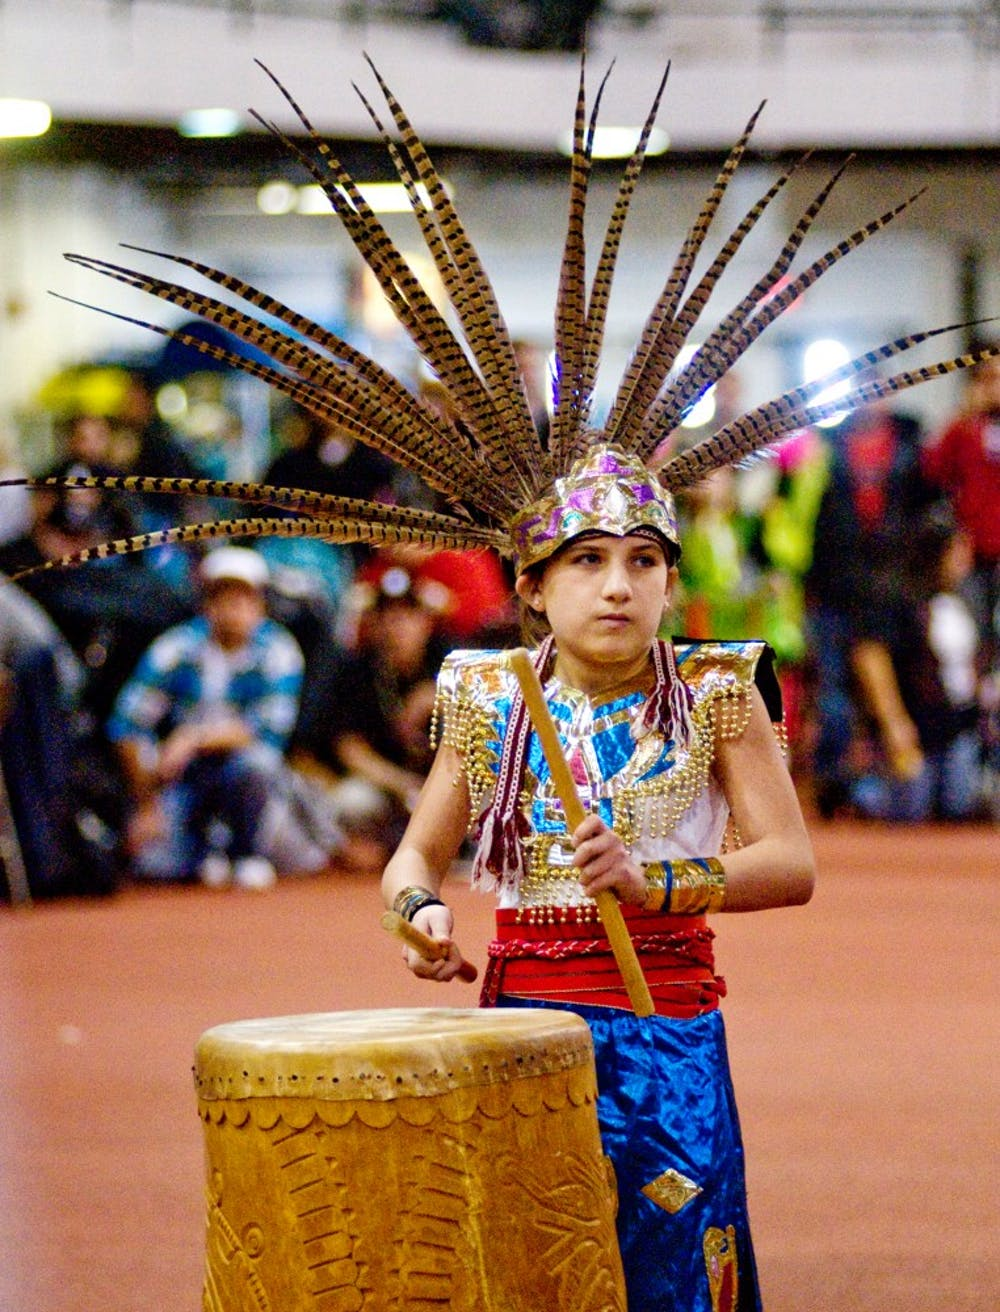 Reina Torrez-Miner, 12, plays a drum Saturday at Jenison Field House. Torrez-Miner was leading Dance Azteca, a group that dances in traditional Mexica style, an indigenous people from Mexico. The group was participating in the 28th annual Pow Wow of Love. Matt Radick/The State News